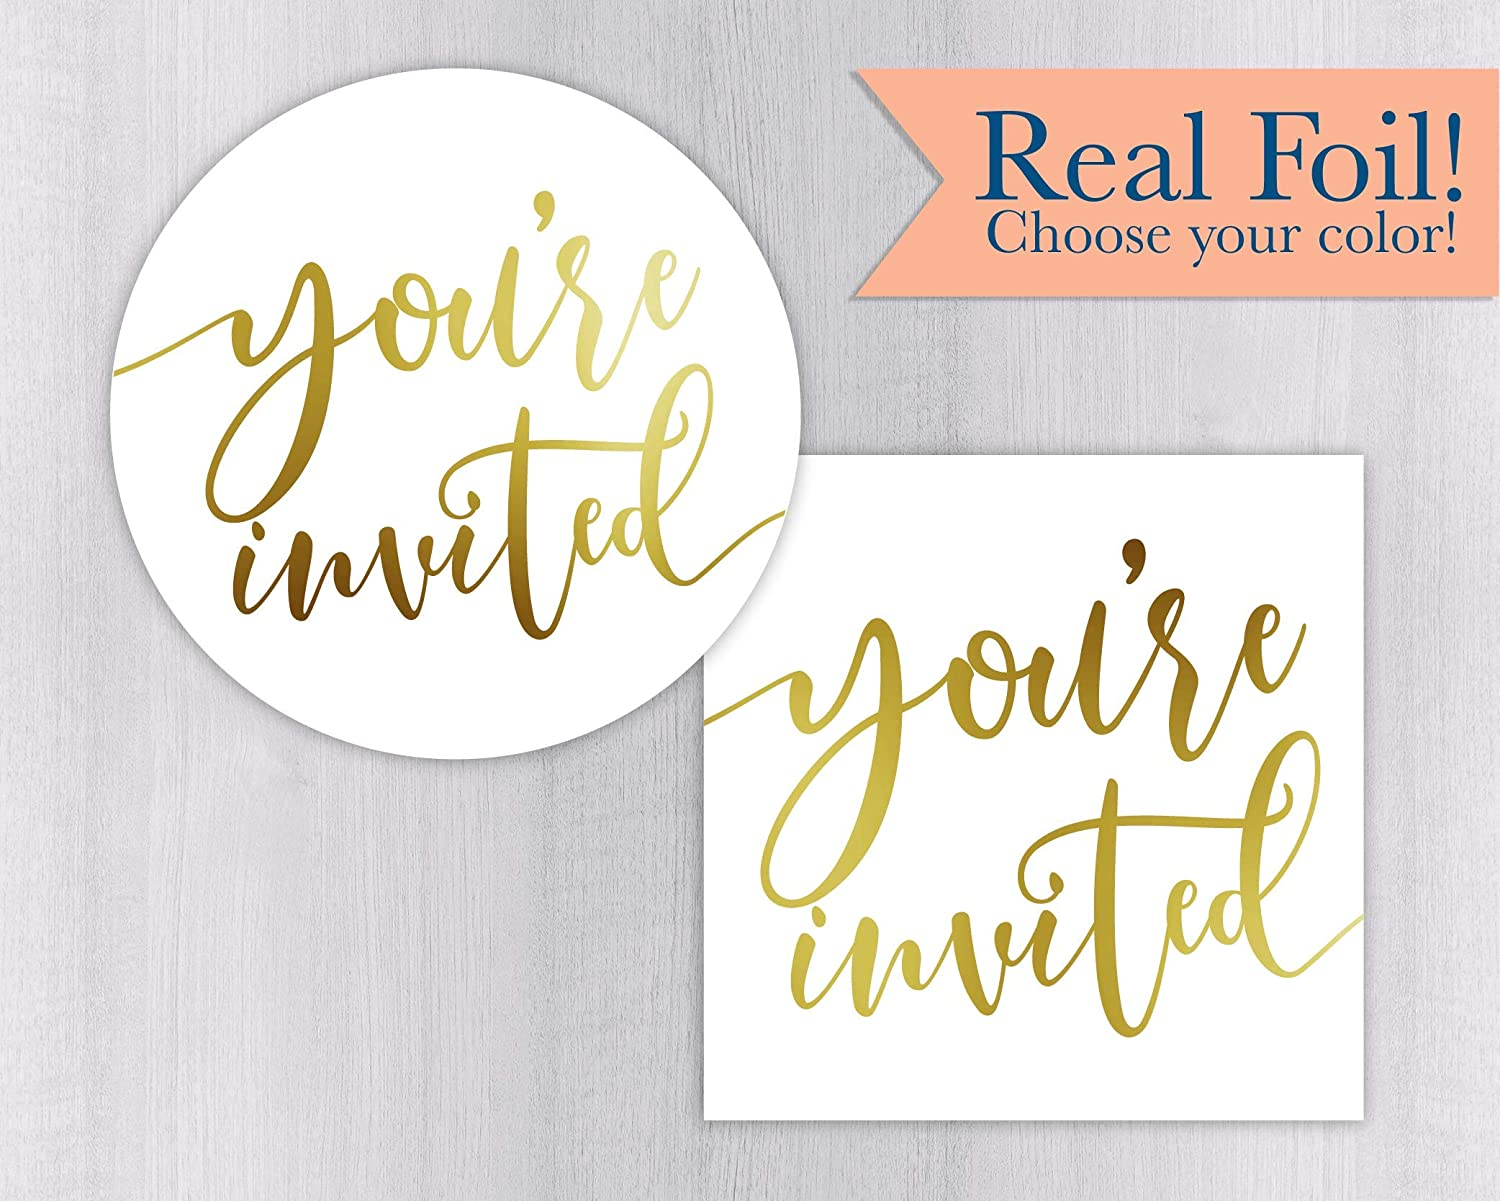 Personalized Color Foiled Event//Party//Celebration Stickers #499-1-F Youre Invited Wedding Stickers